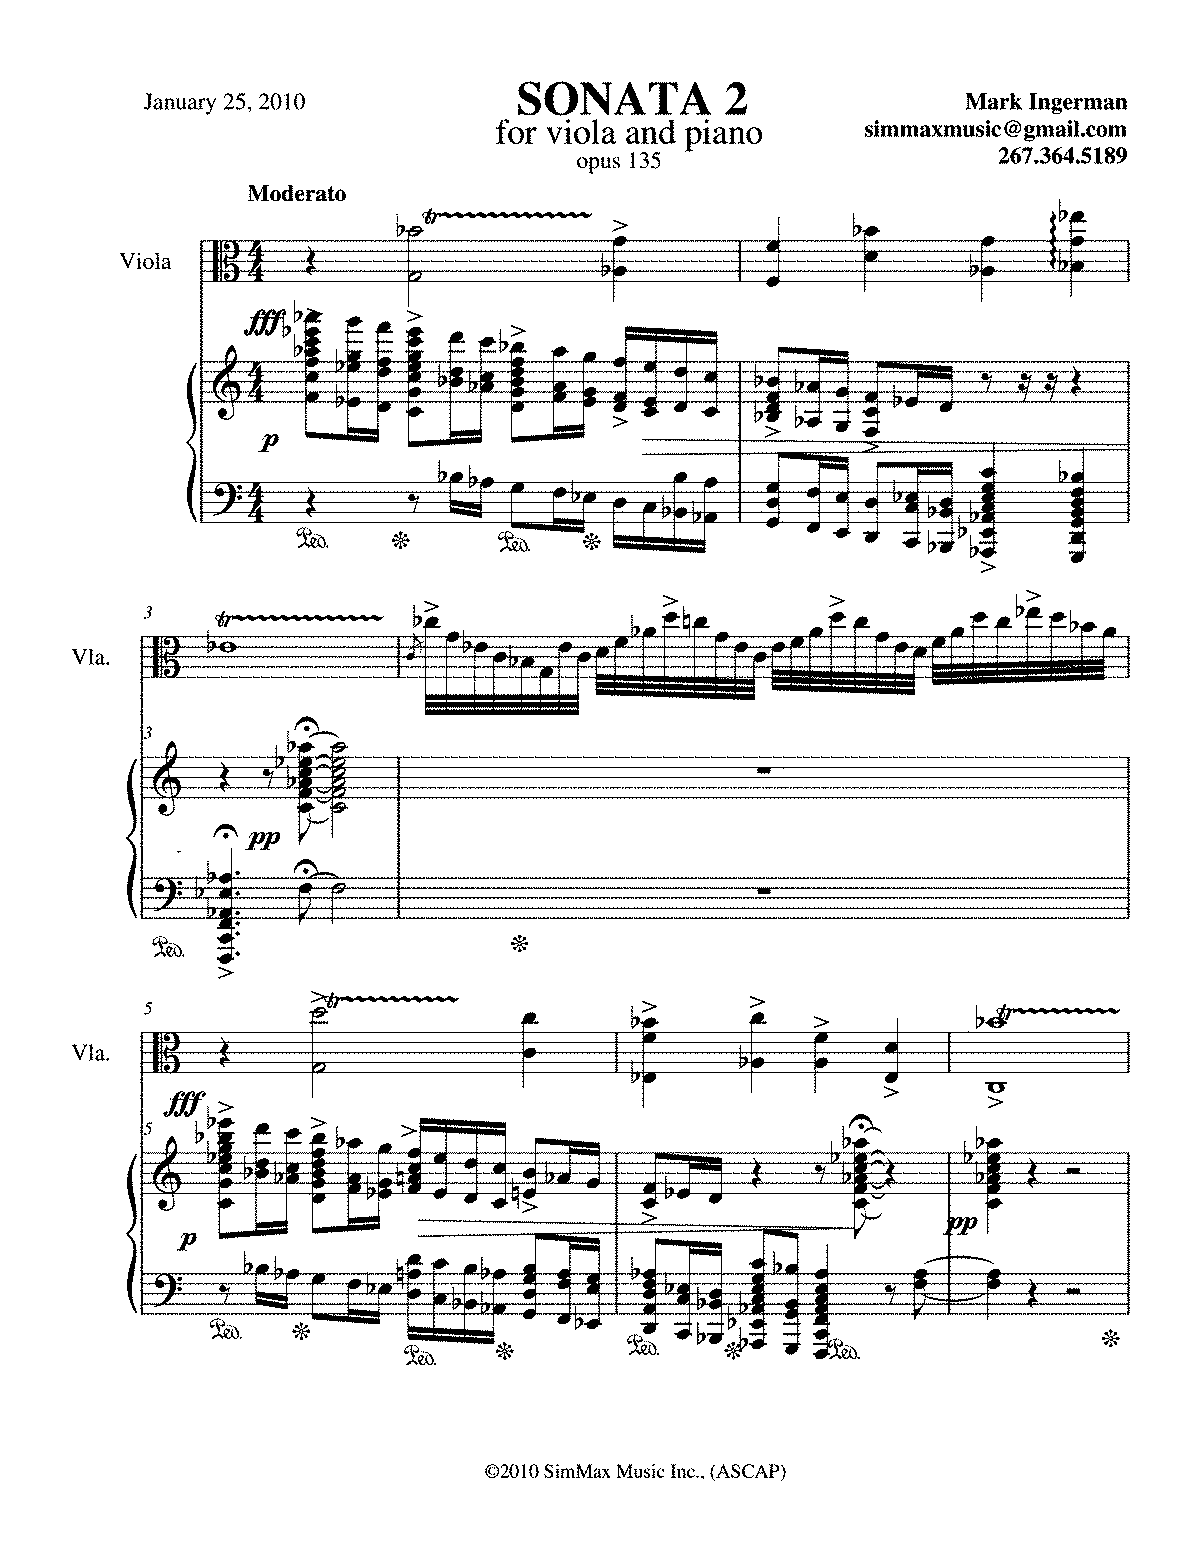 PMLP182045-SONATA -2 for viola and piano m1player.pdf